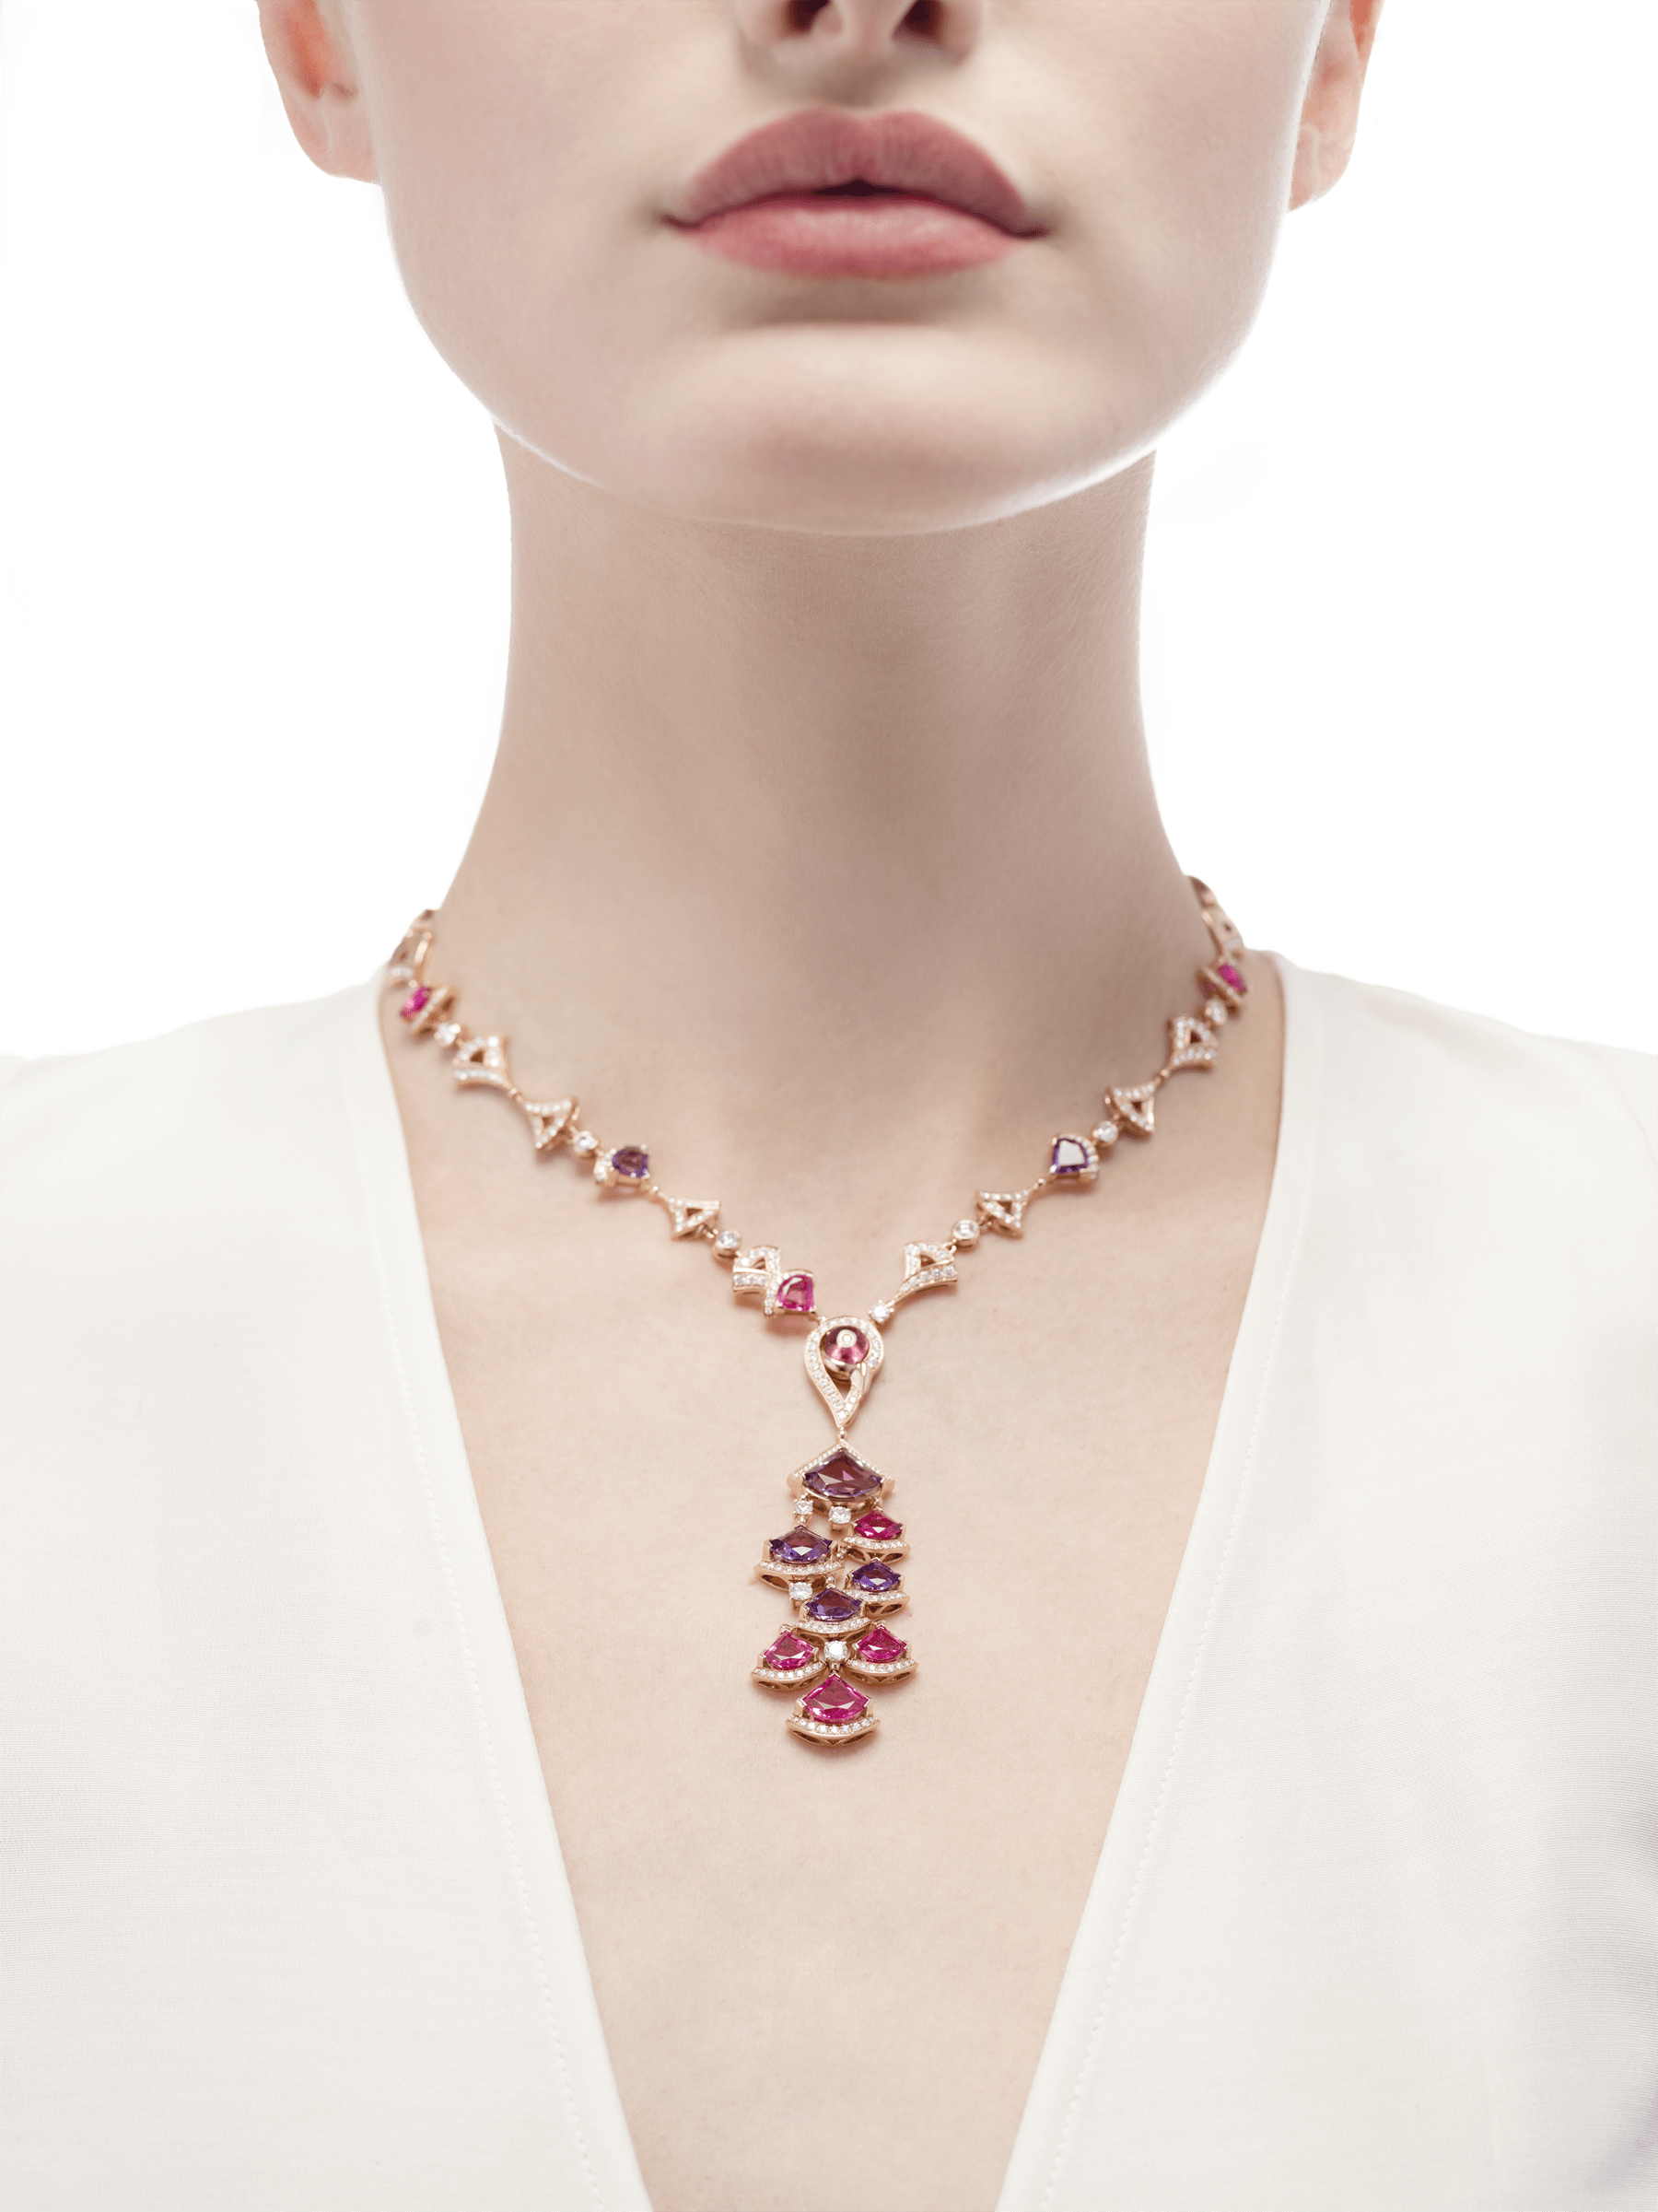 DIVAS' DREAM necklace in 18 kt rose gold set with pink rubellite, amethysts, pink tourmaline (1.50 ct) and pavé diamonds. 354075 image 2